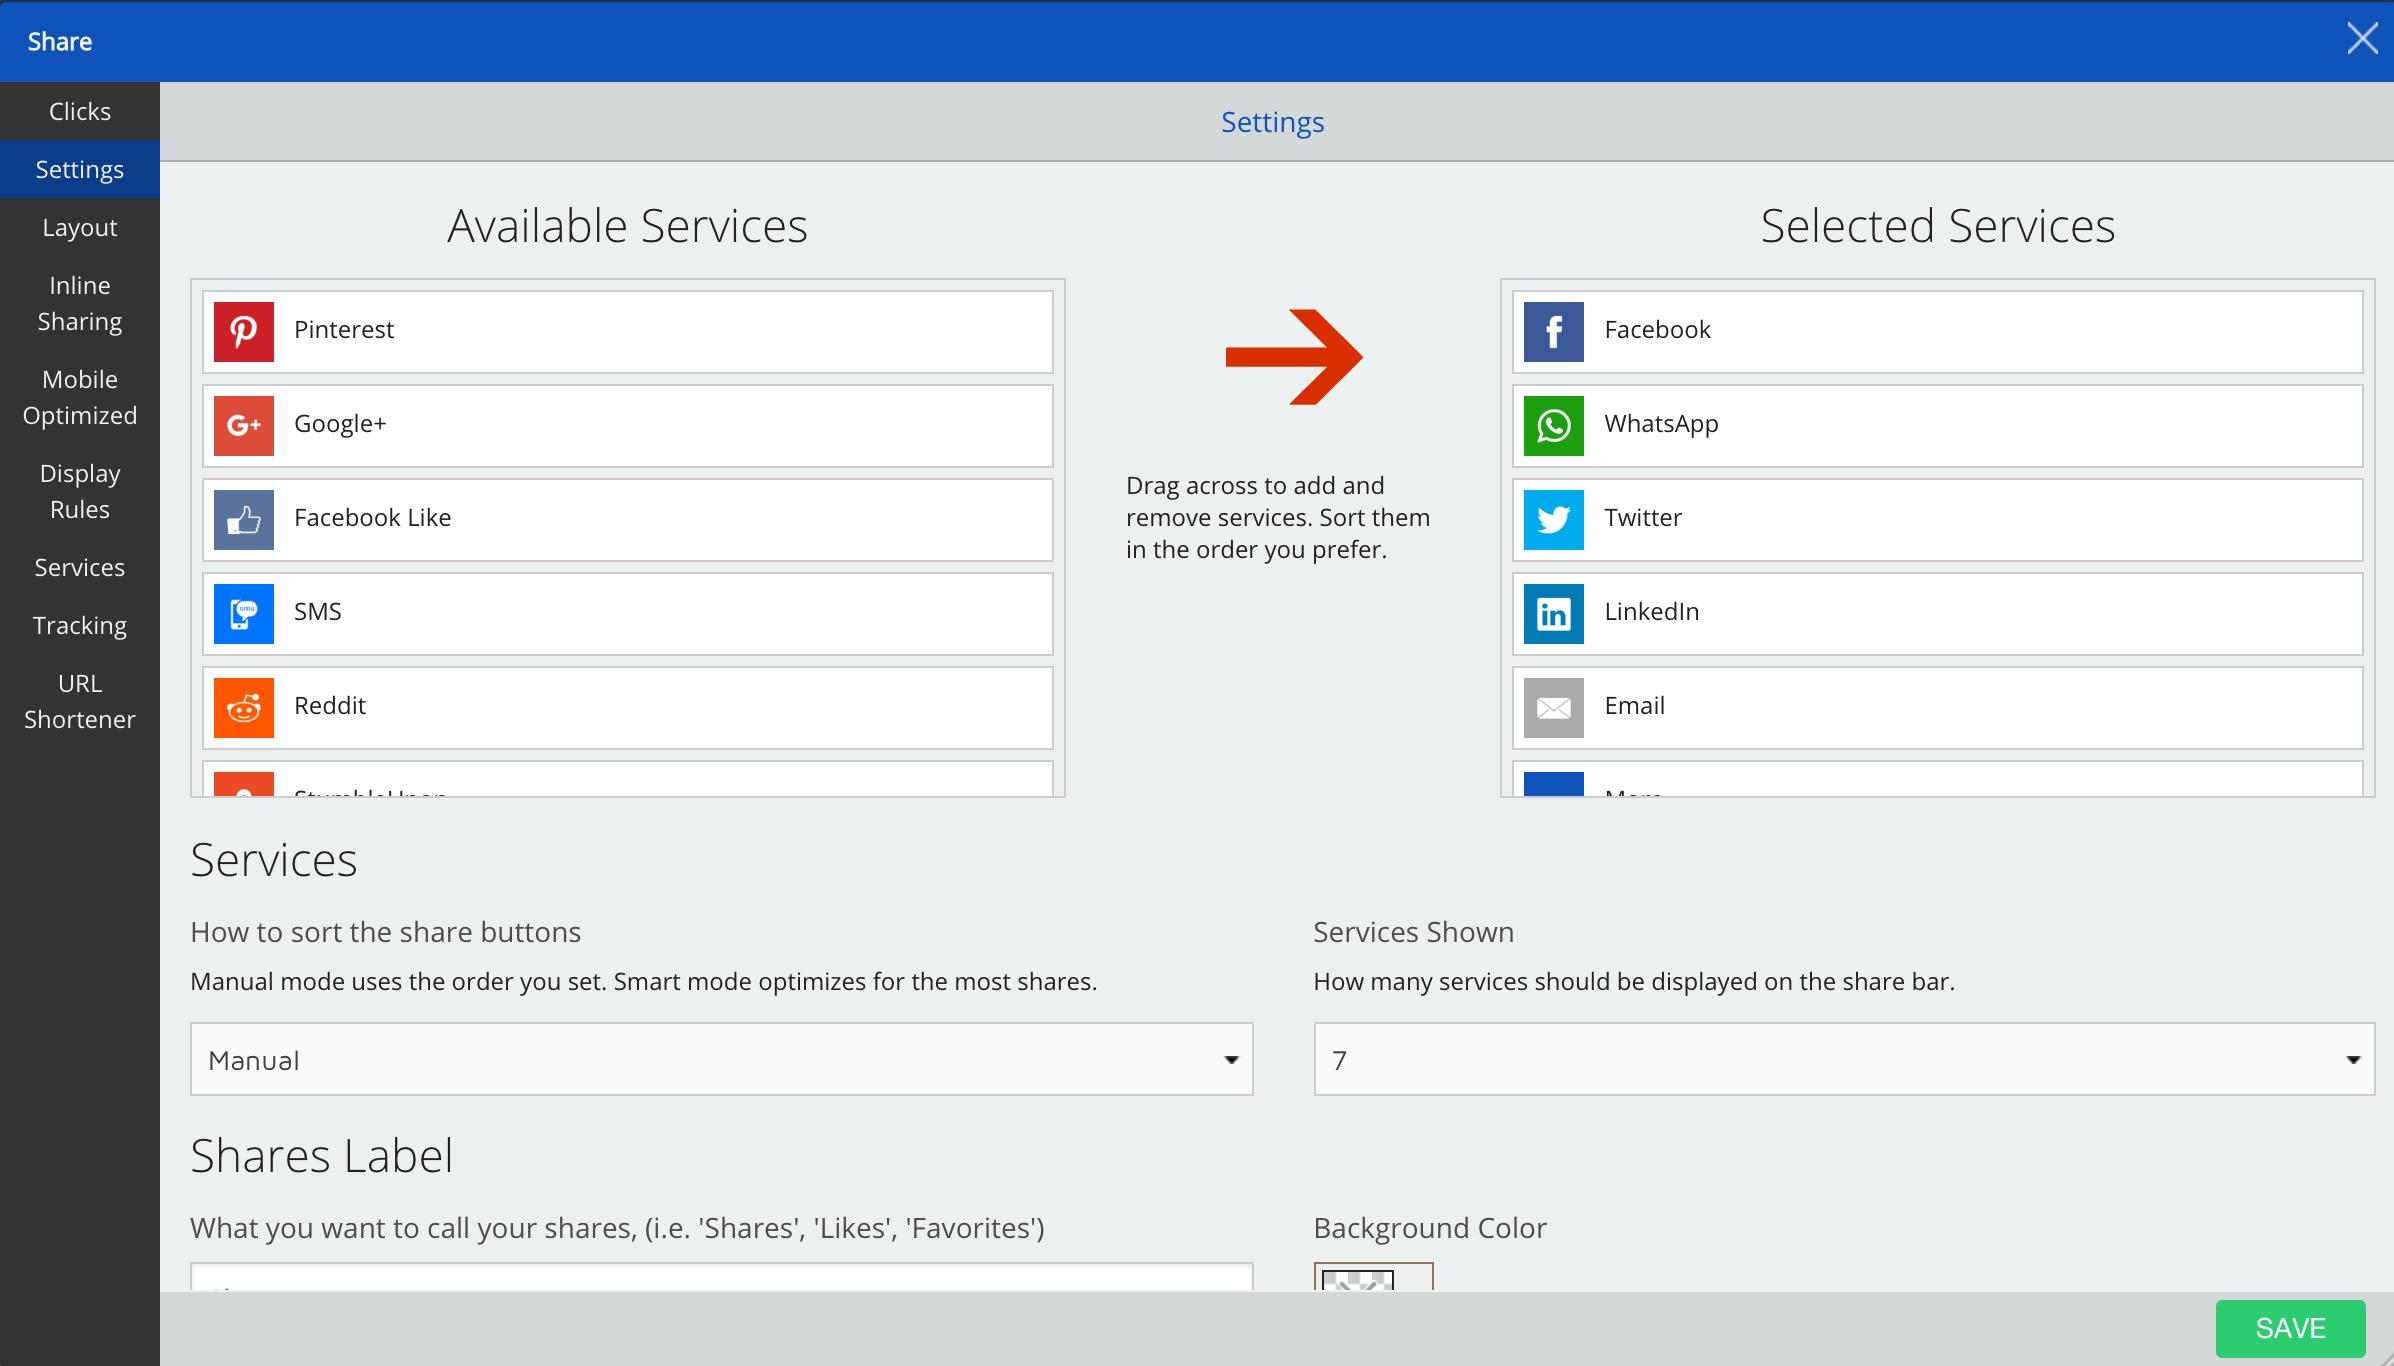 Screenshot of available and selected services on the Sumo dashboard